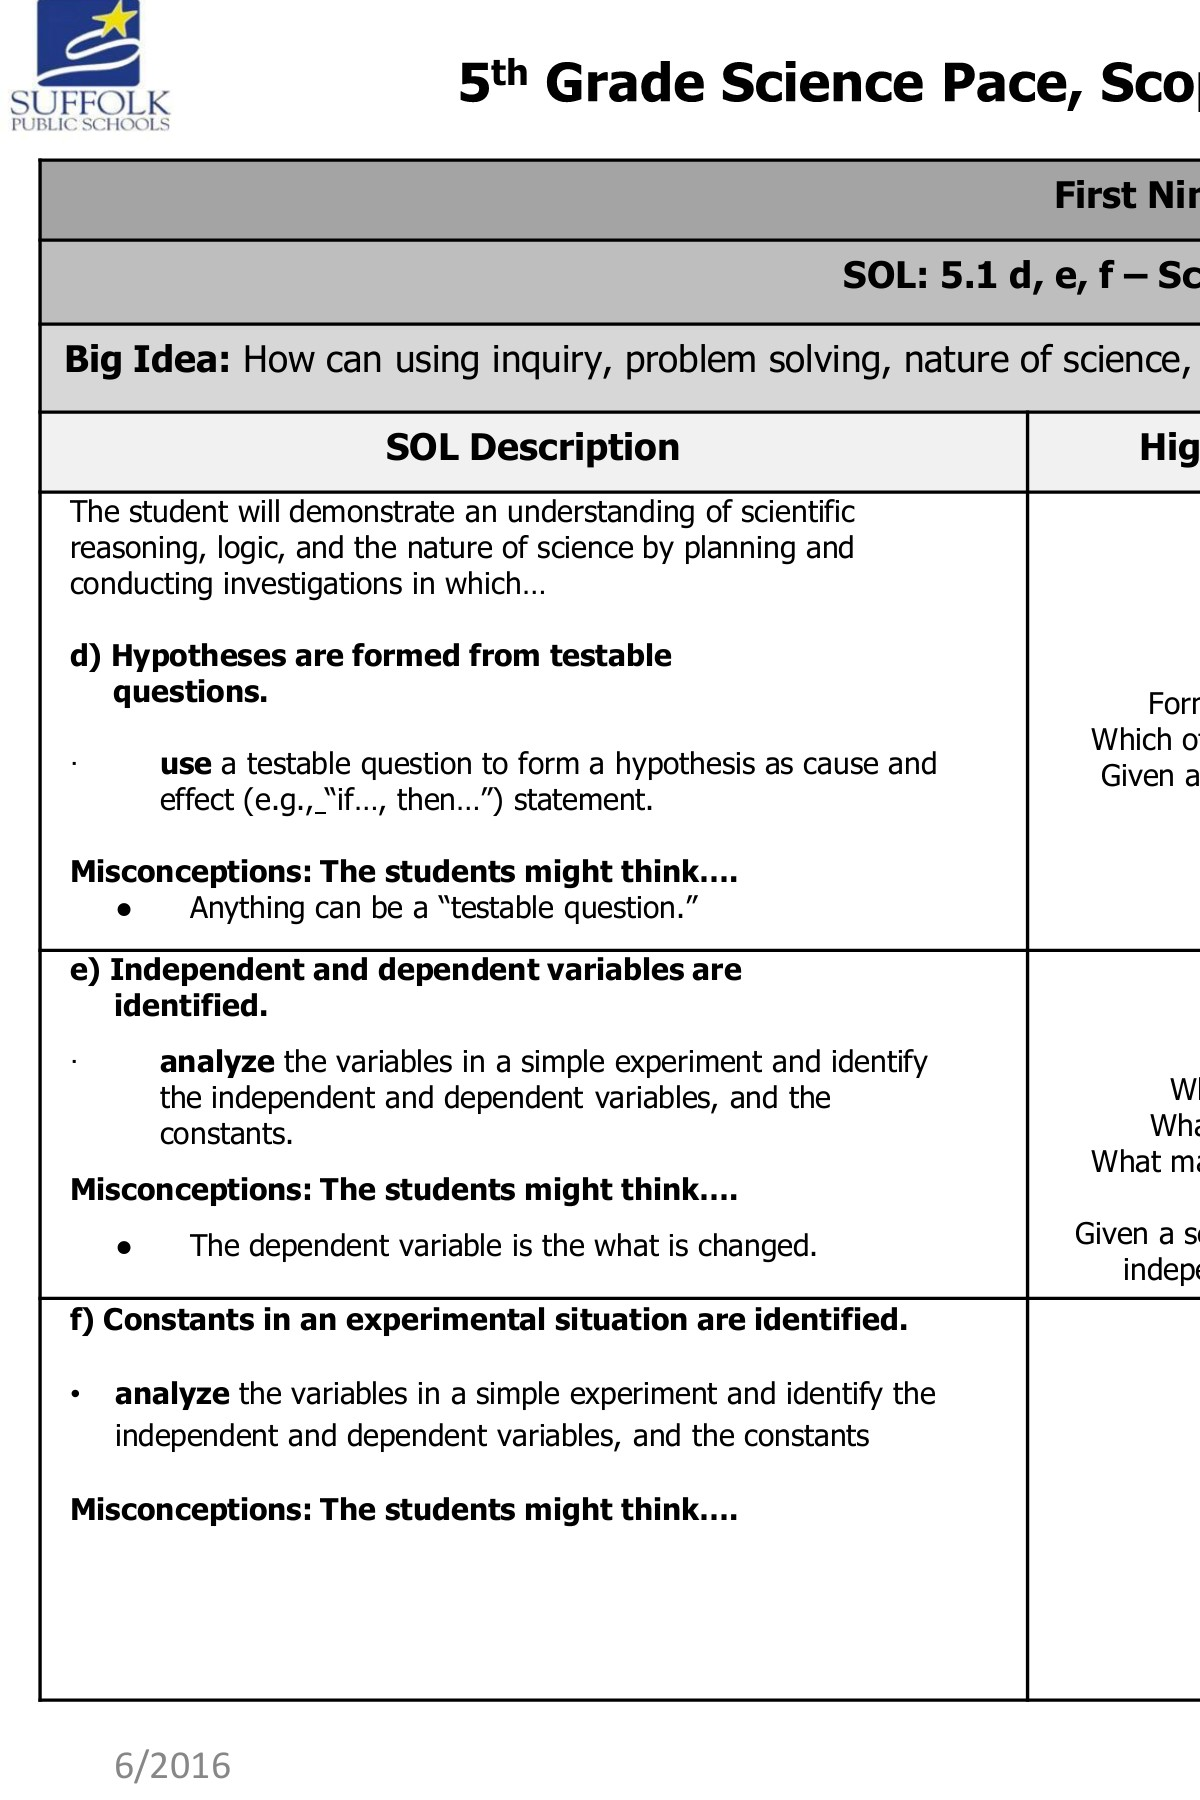 Science Grade 5th Grade Scope And Sequence Math